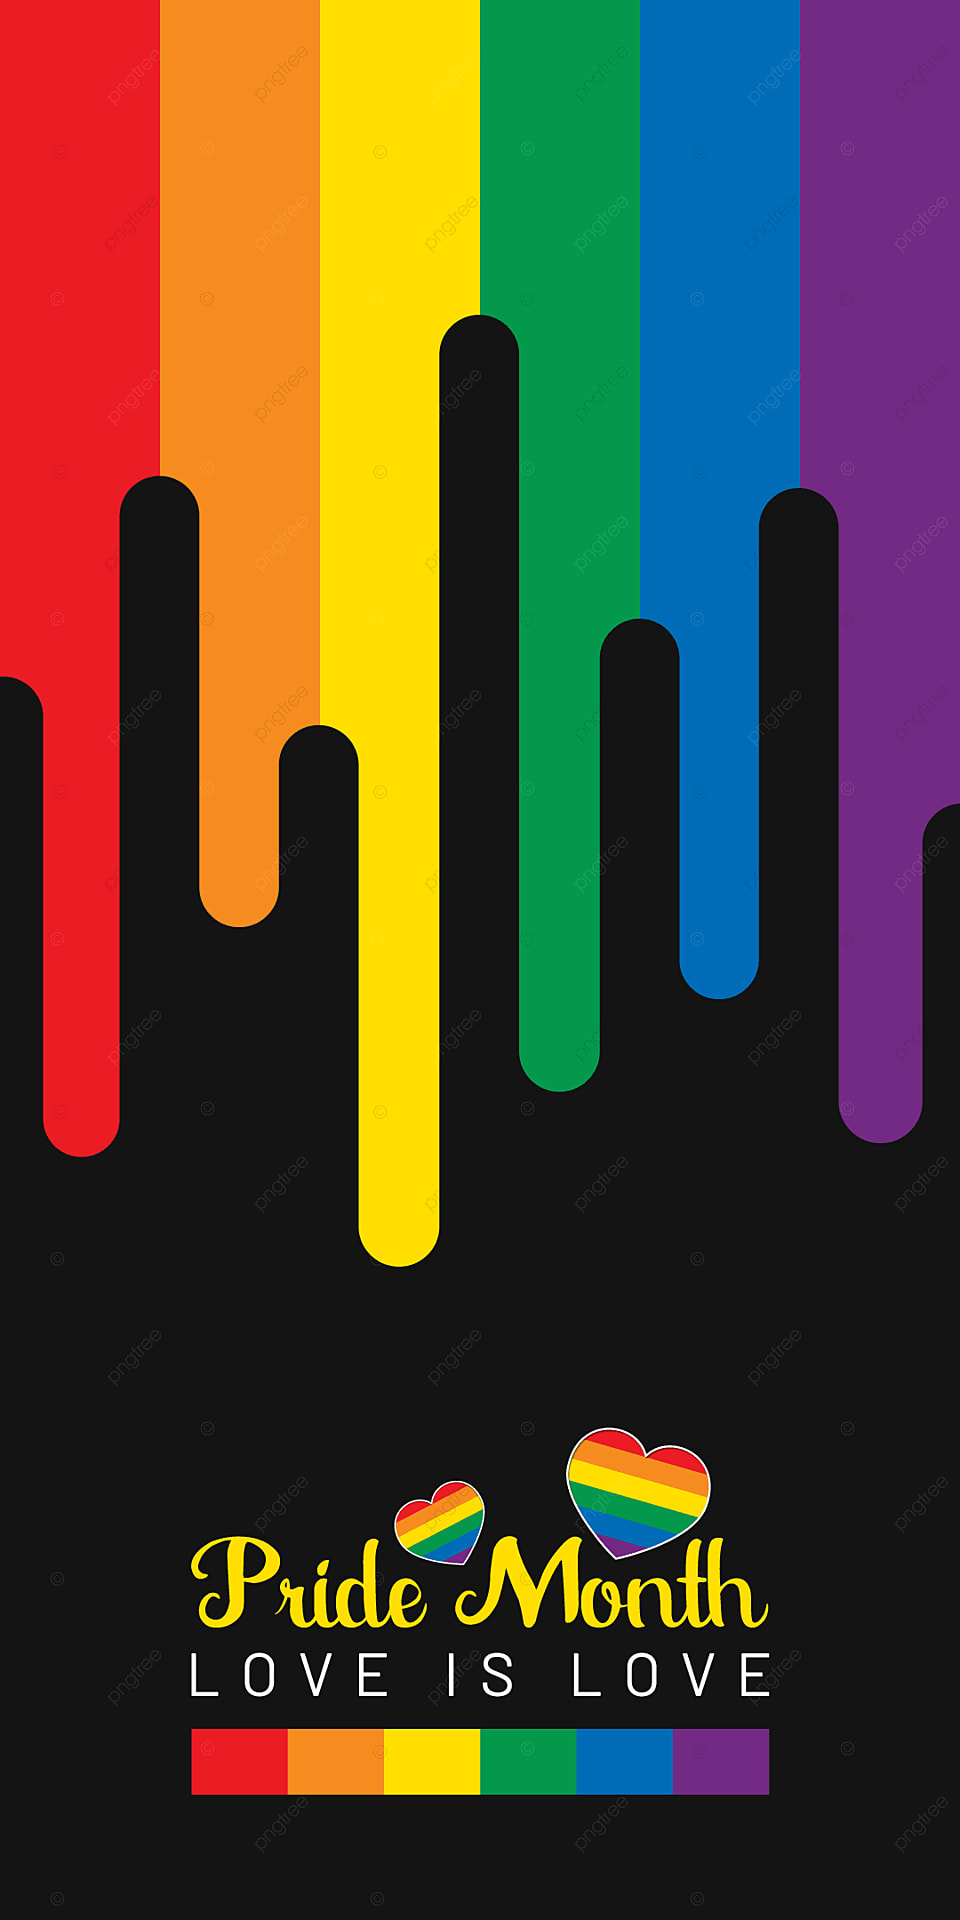 Pride Month Colorful And Black Background Mobile Phone Wallpaper 960x1920